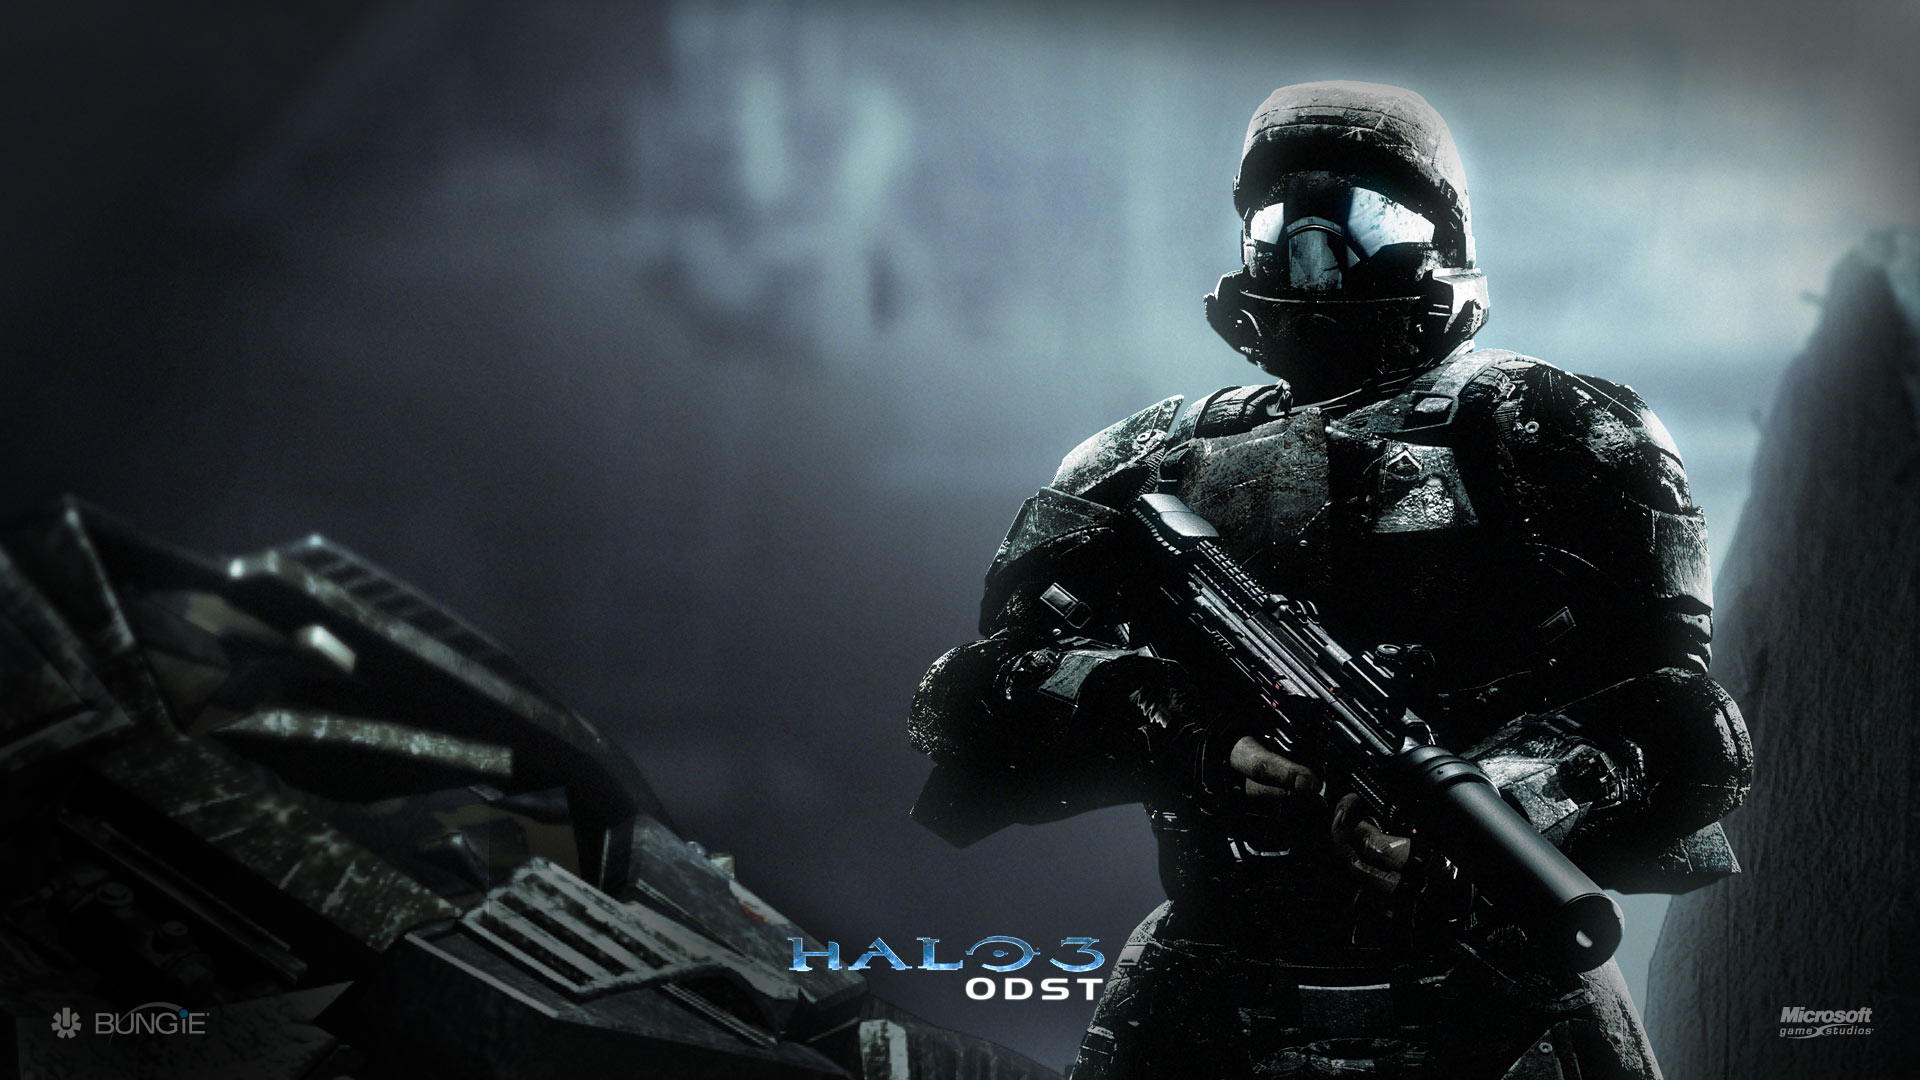 wallpaper halo wallpapers 1920x1080 1920x1080